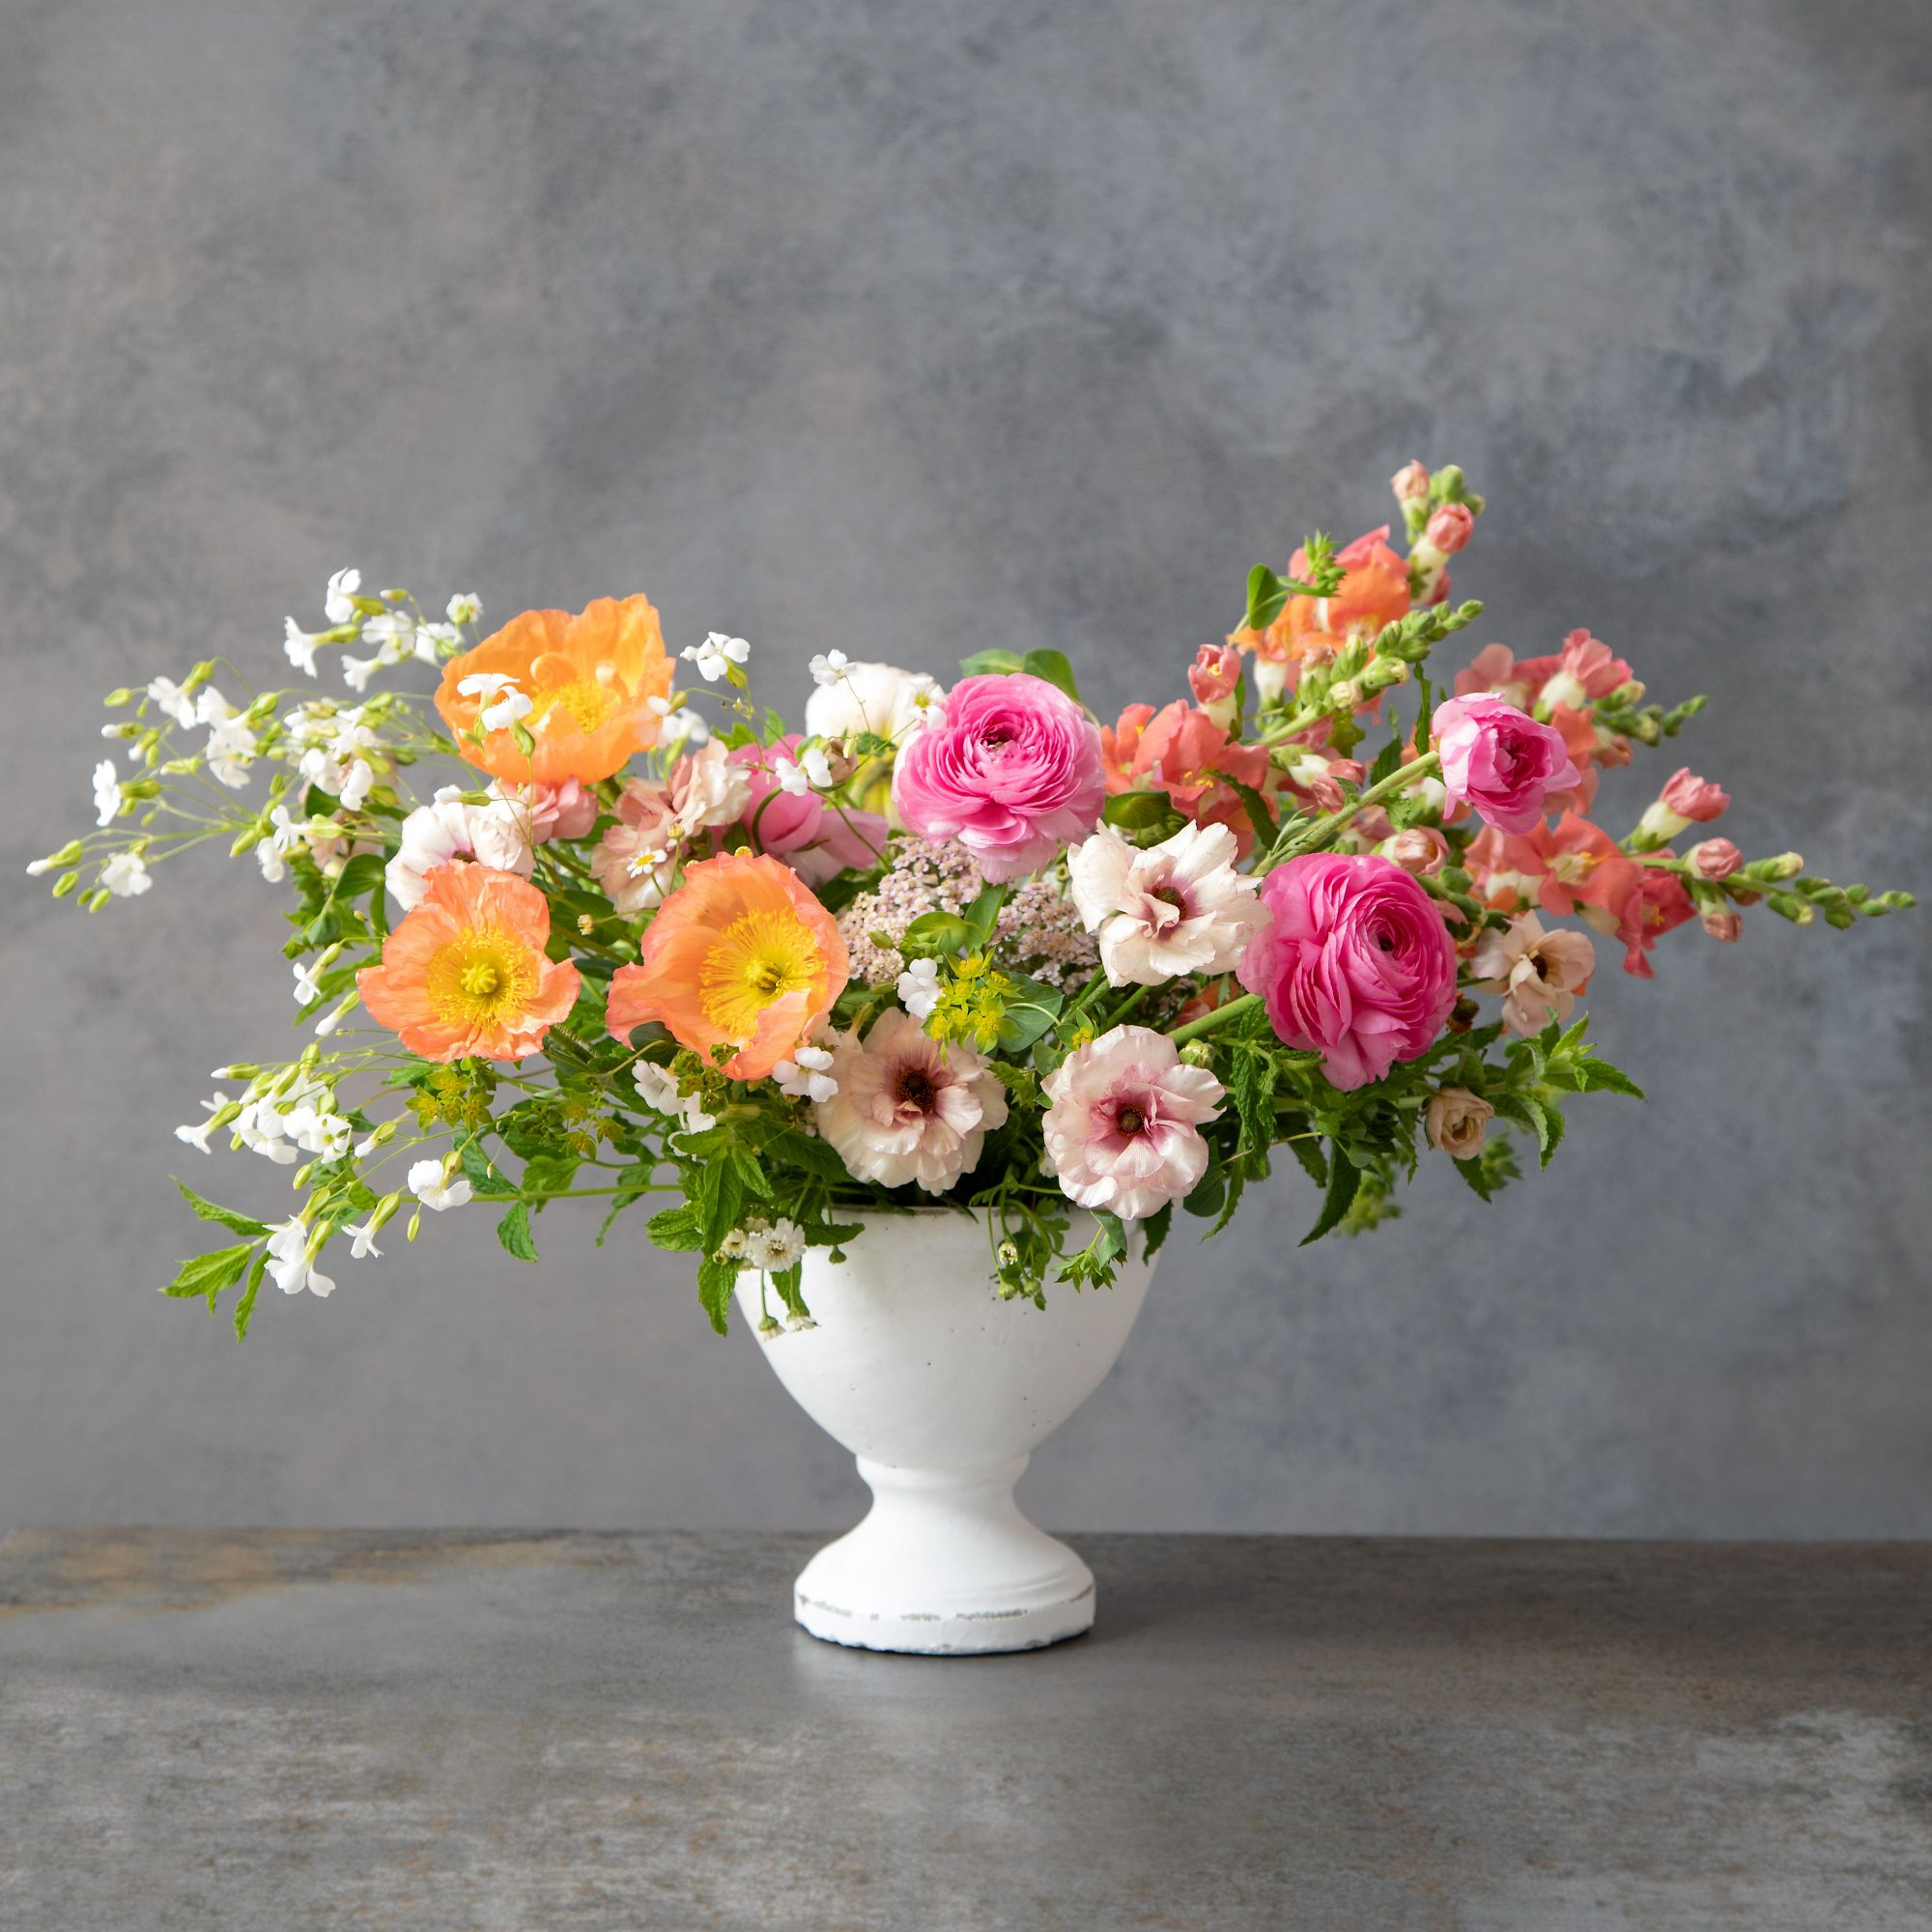 Spring Compote Flower Arrangement with Ranunculus, Snapdragons, and Poppies